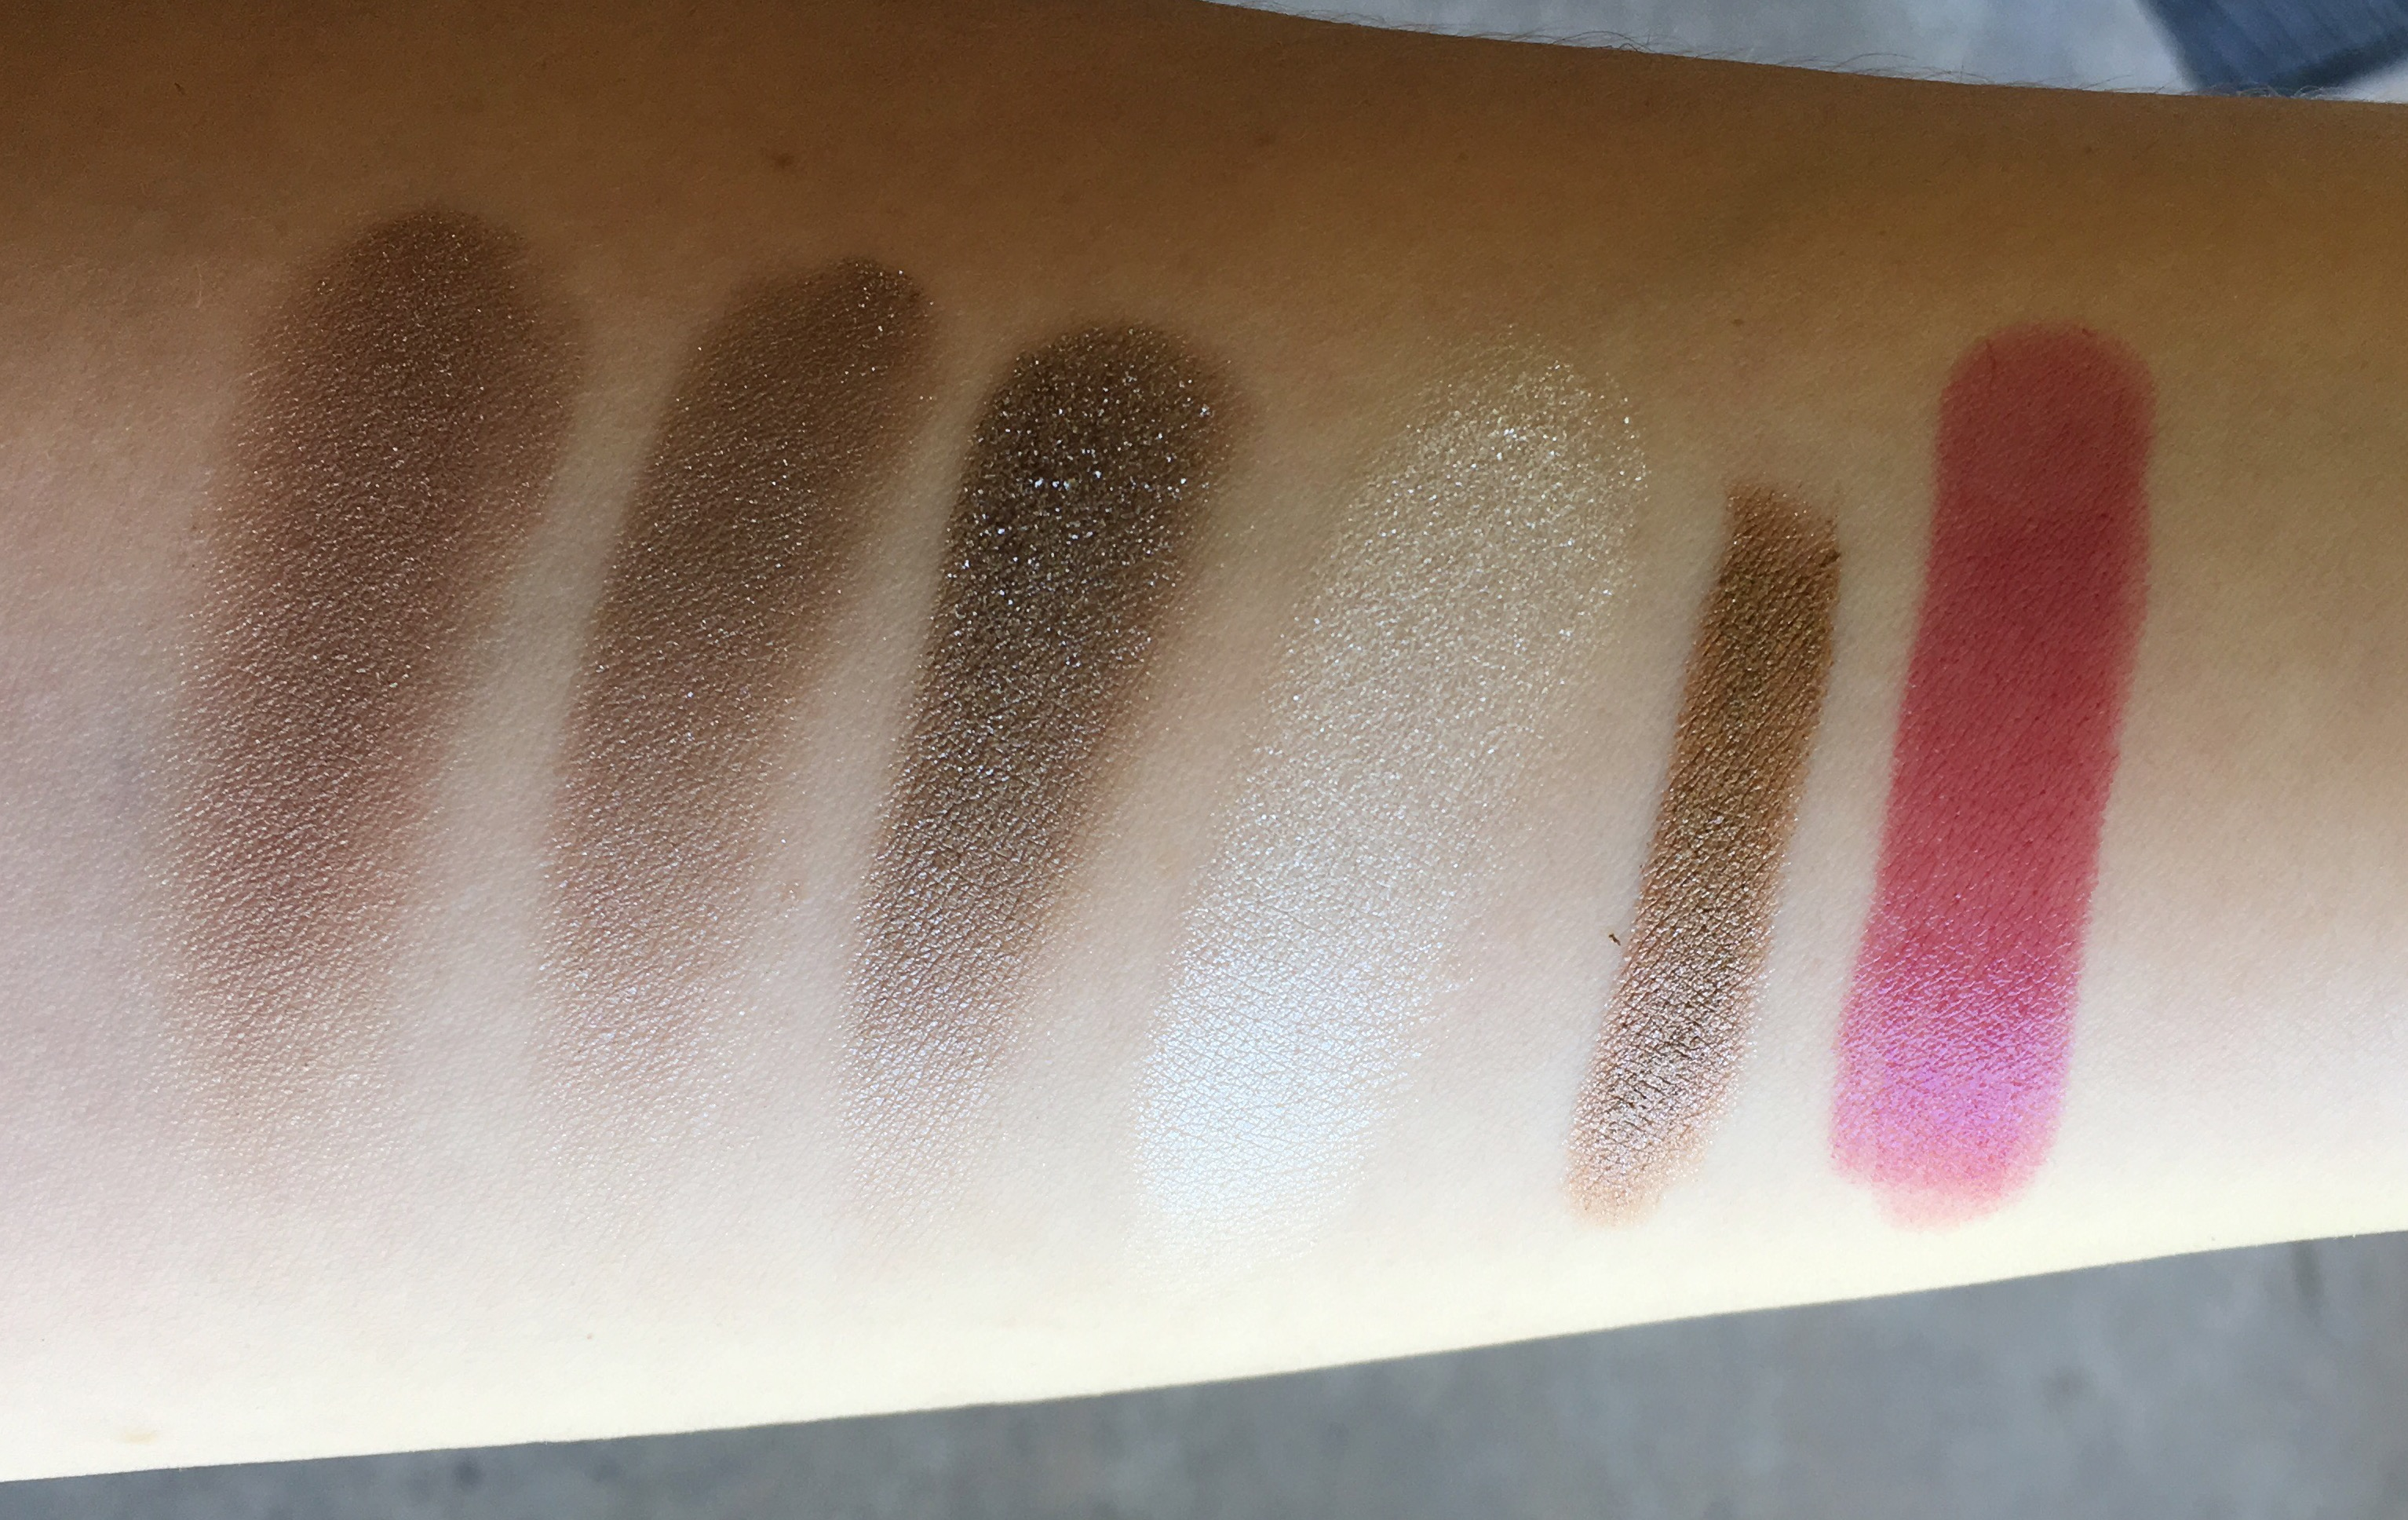 Burberry swatches in outdoor shade (l to r) Pale Barley, Nude (dry), Nude (wet), S/S 2016 Runway Palette White, Eye Colour Contour Pale Copper, Kisses Sheer Boysenberry